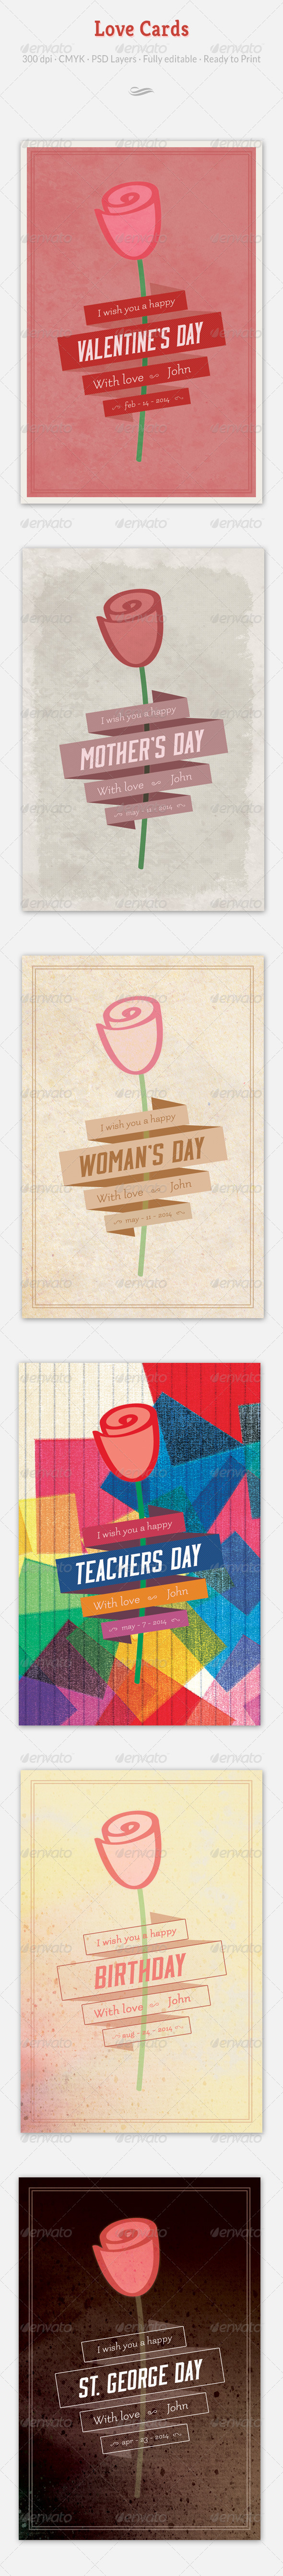 GraphicRiver Love Cards 6601370